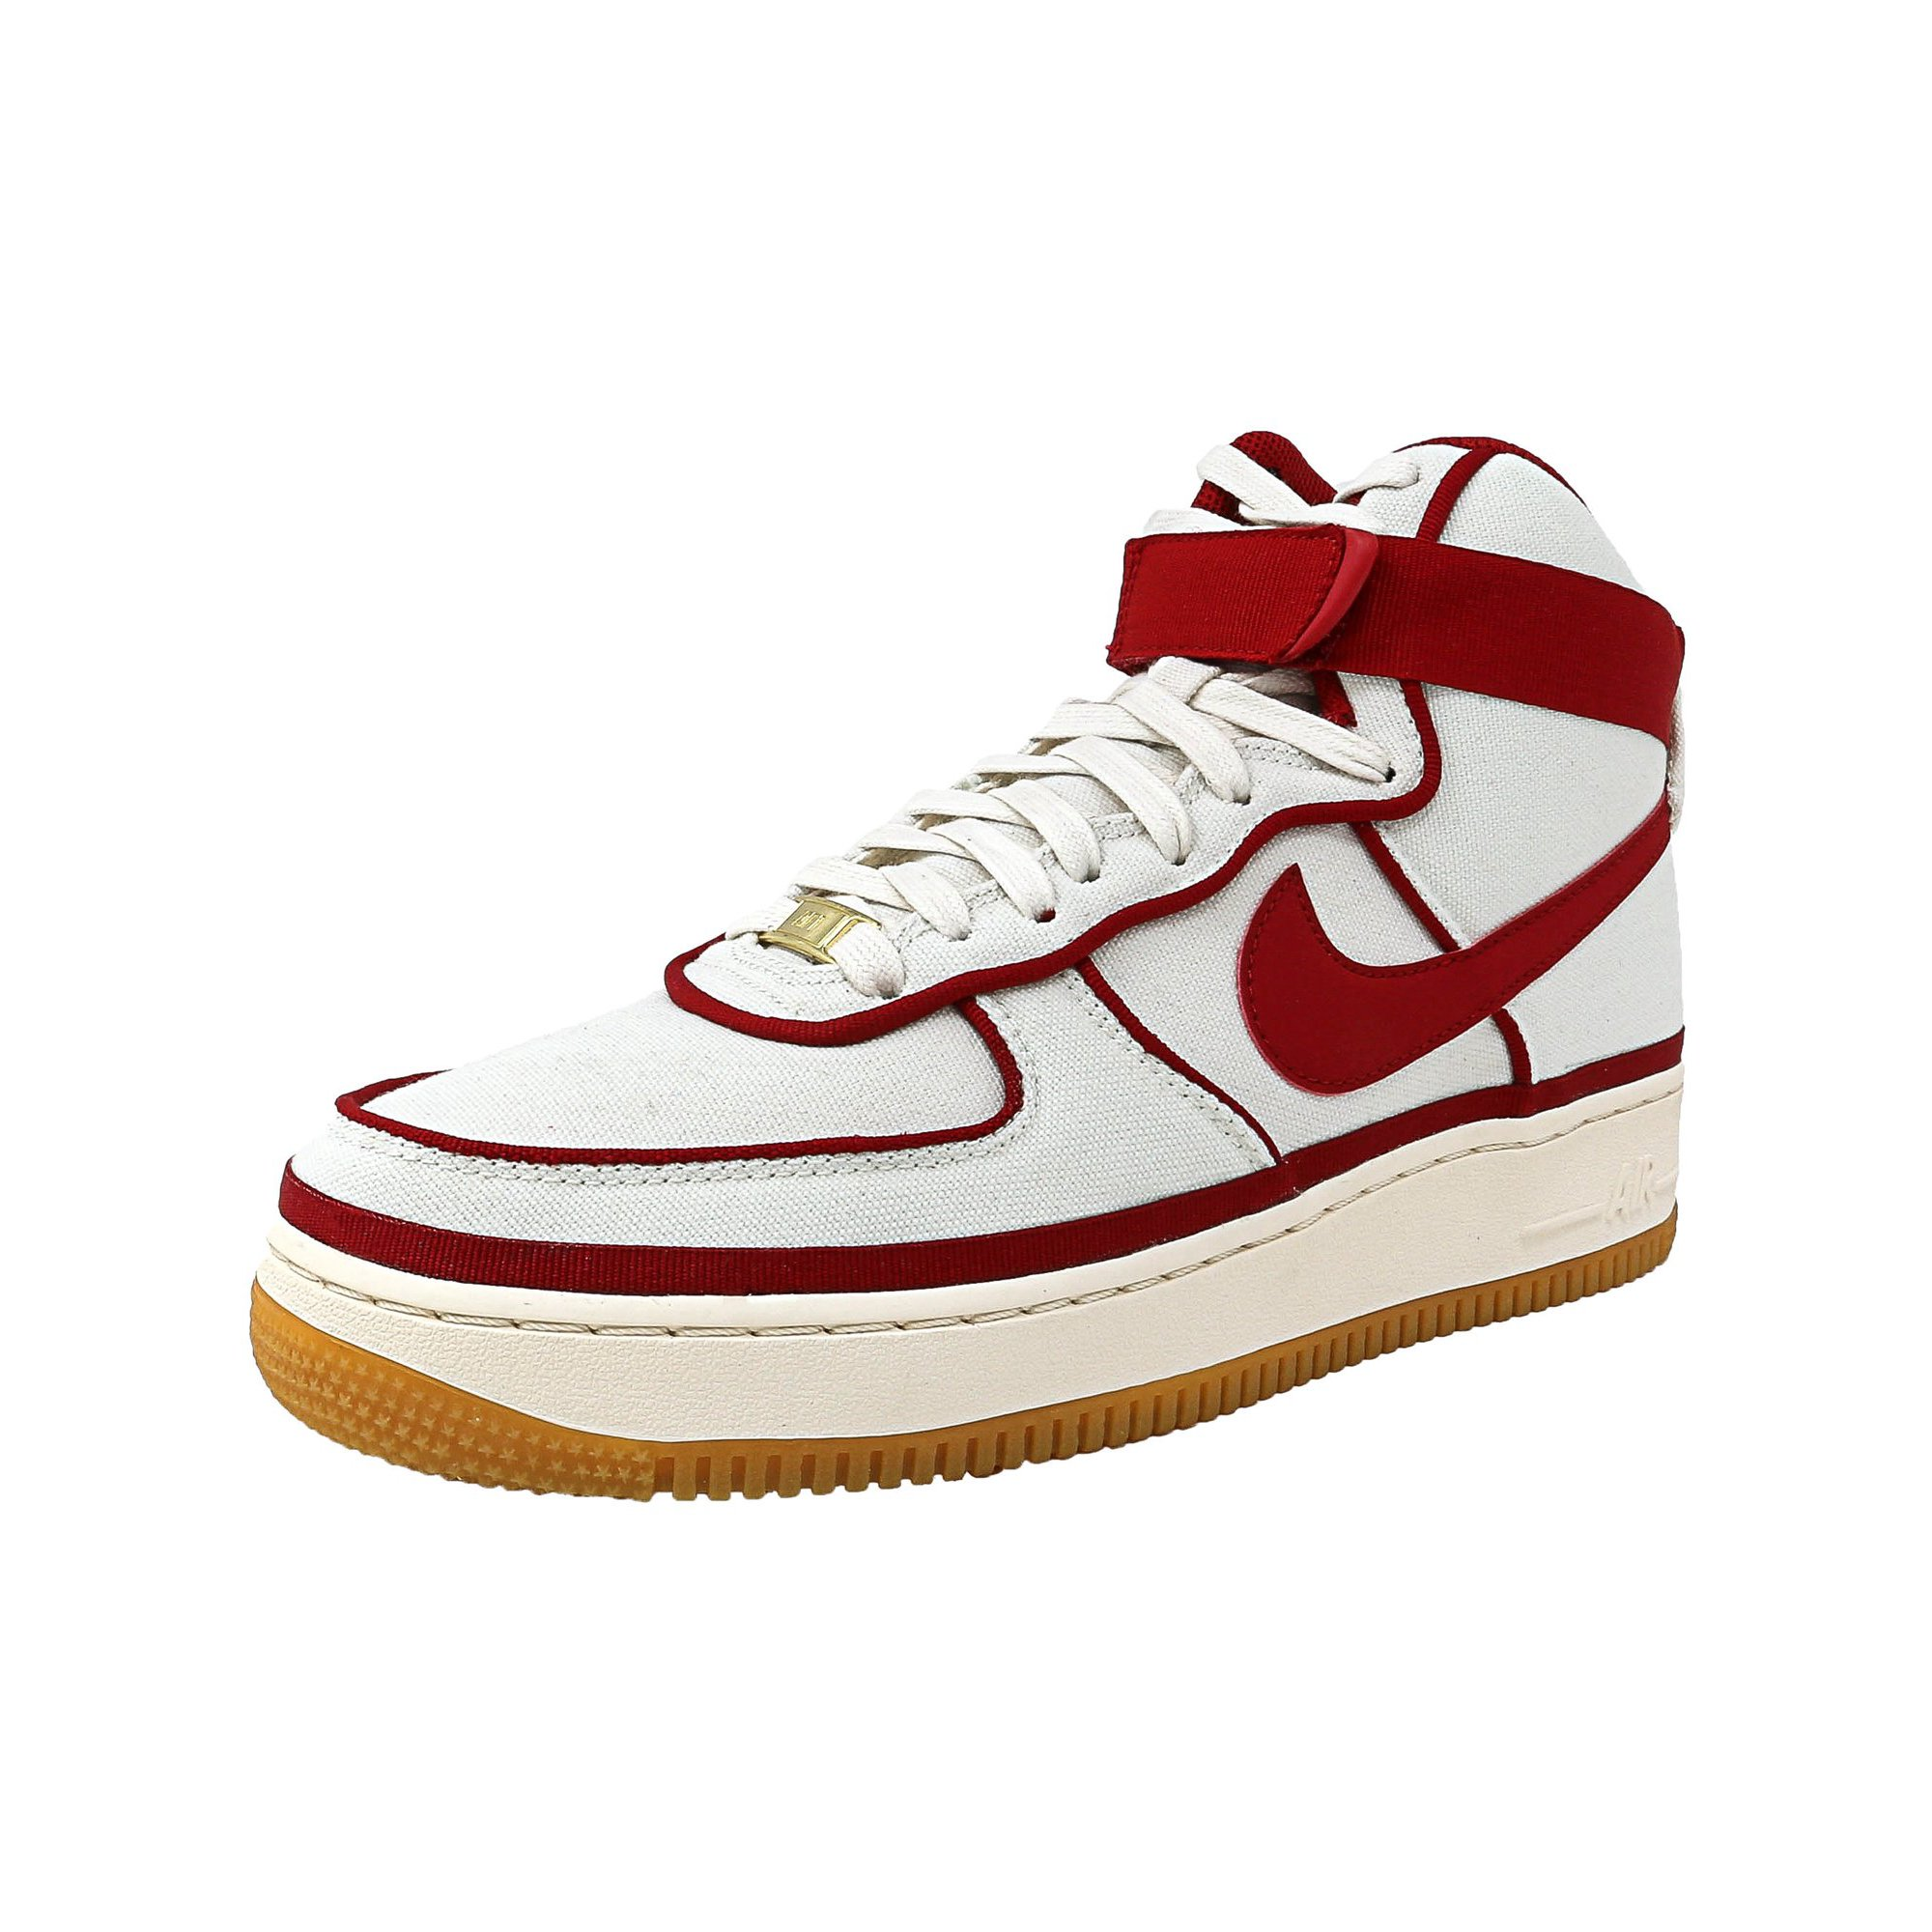 Nike Men S Air Force 1 High 07 Lv8 Sail Gym Red Black Ankle High